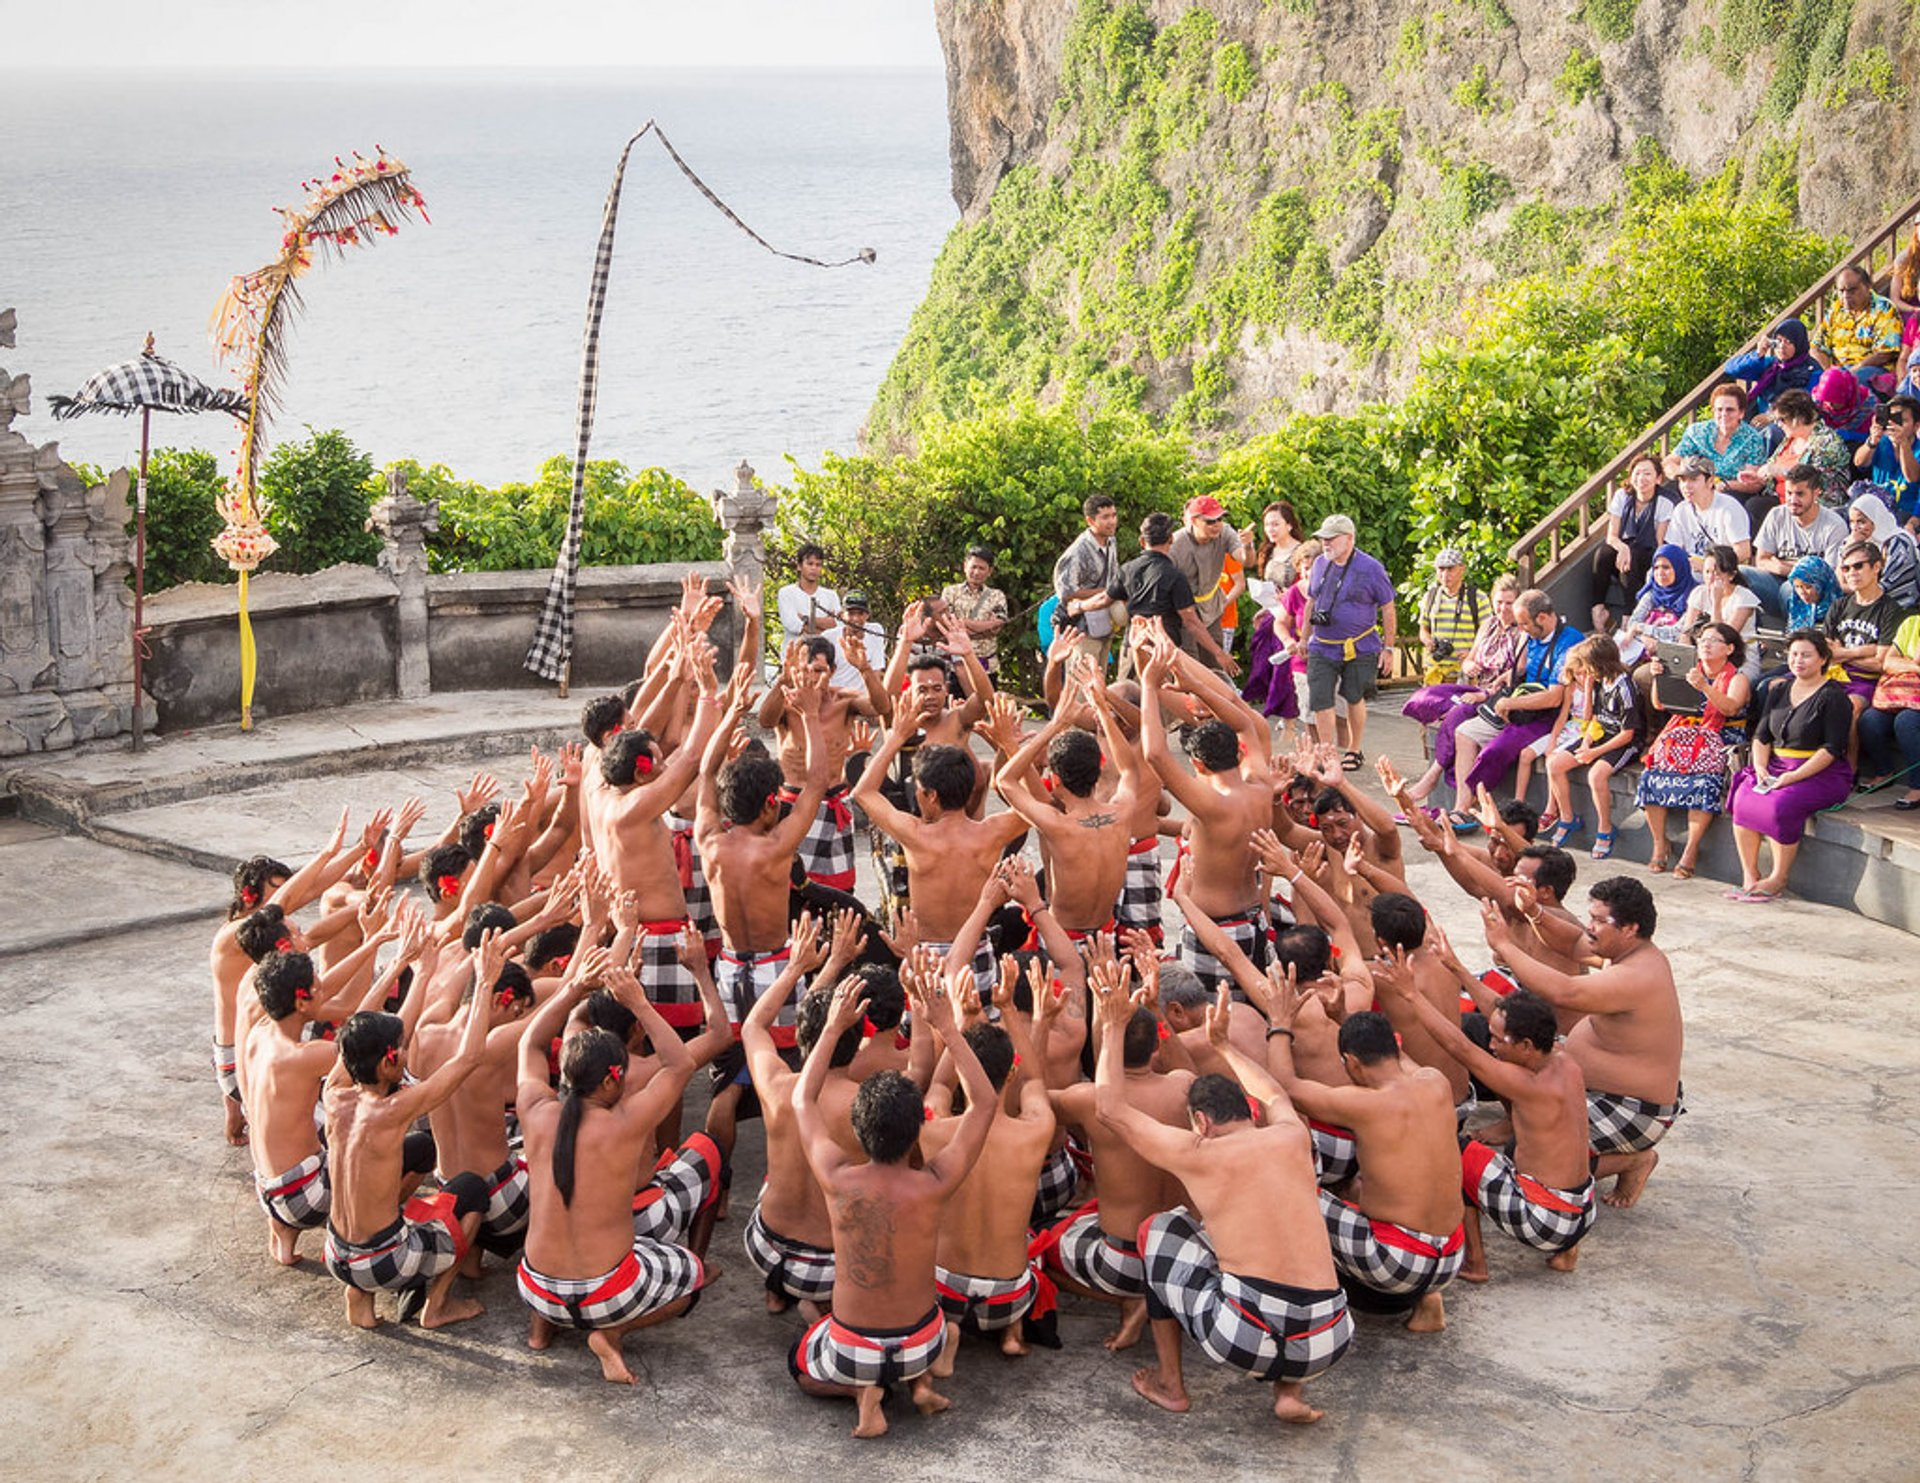 Kecak or Monkey Dance in Bali 2020 - Best Time